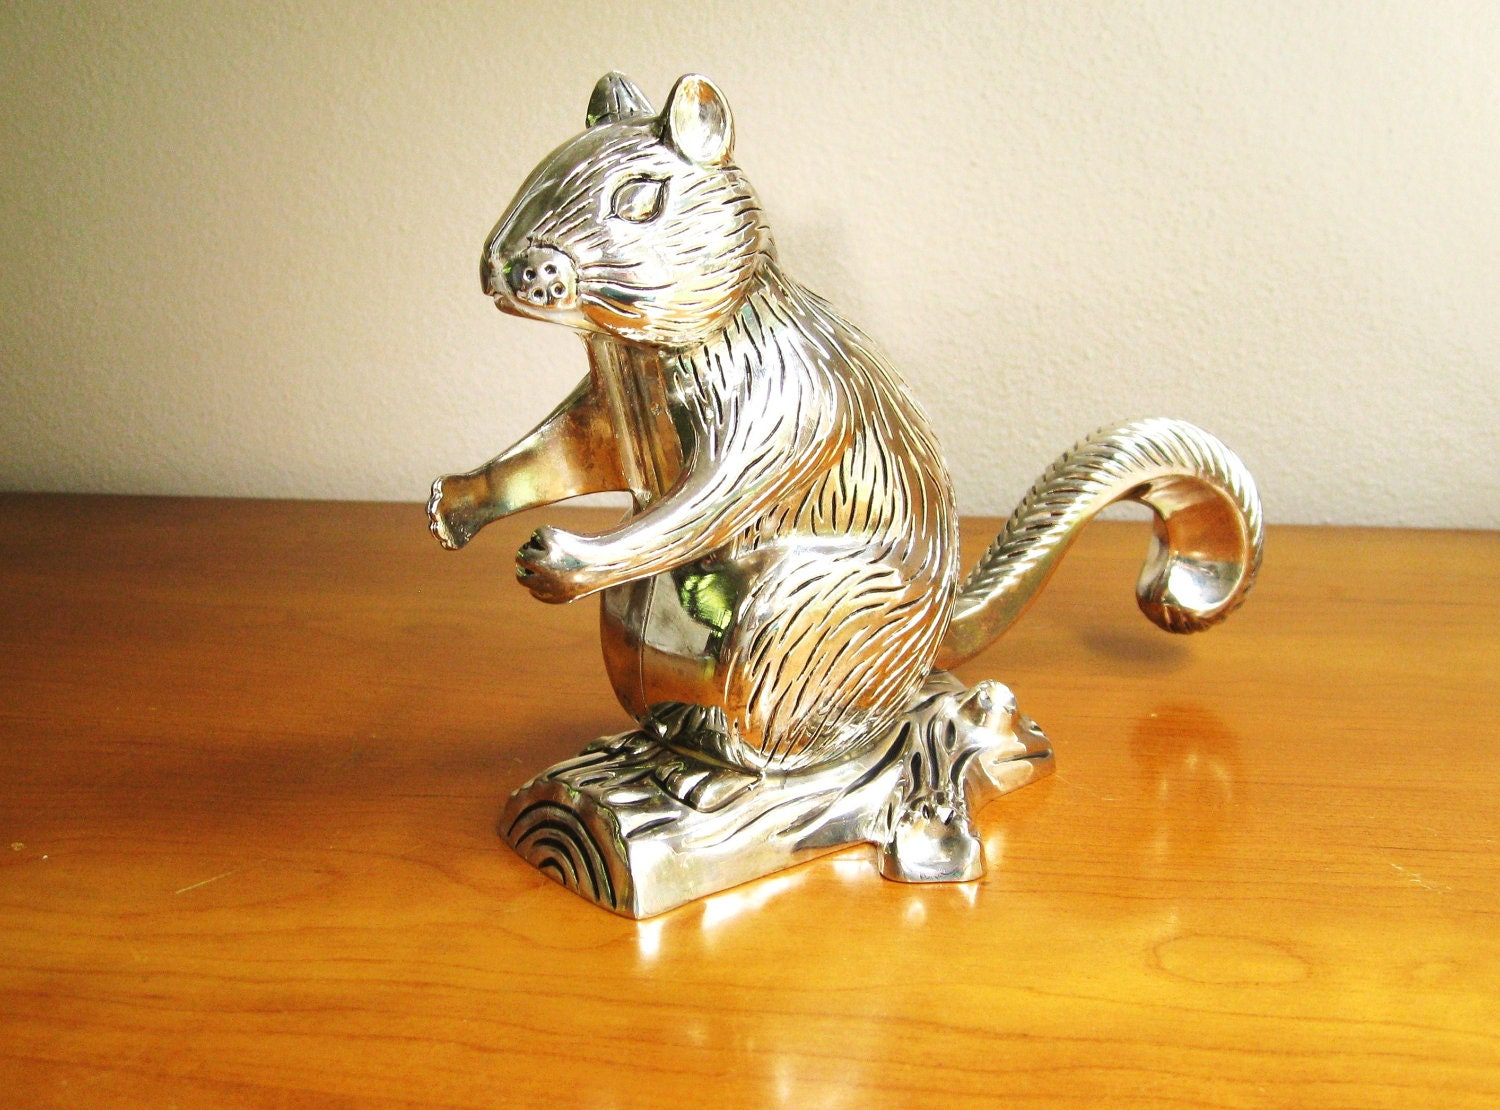 Vintage godinger squirrel nutcracker by dewymorningvintage on etsy - Nutcracker squirrel ...